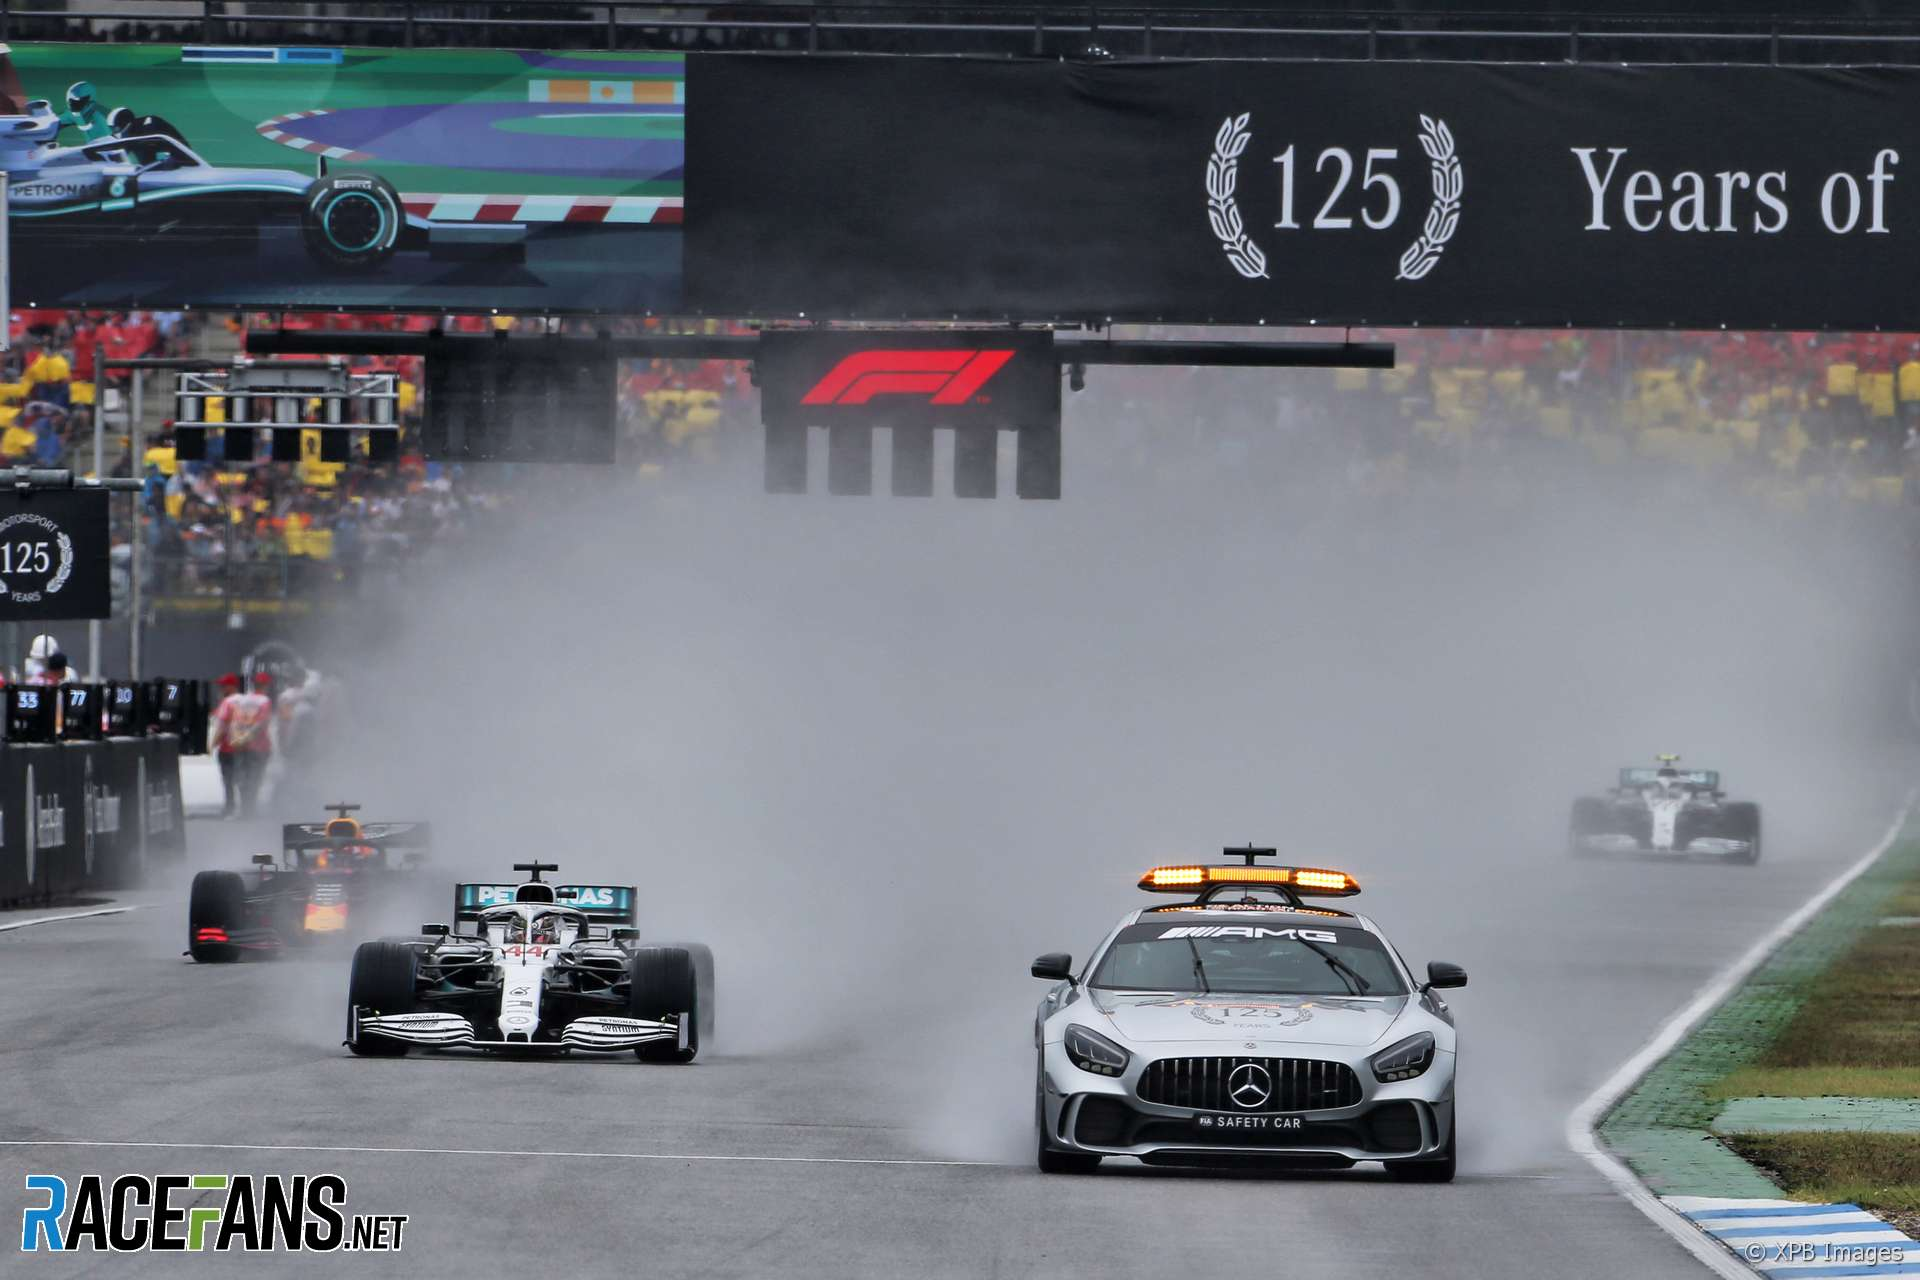 Safety Car, Hockenheimring, 2019